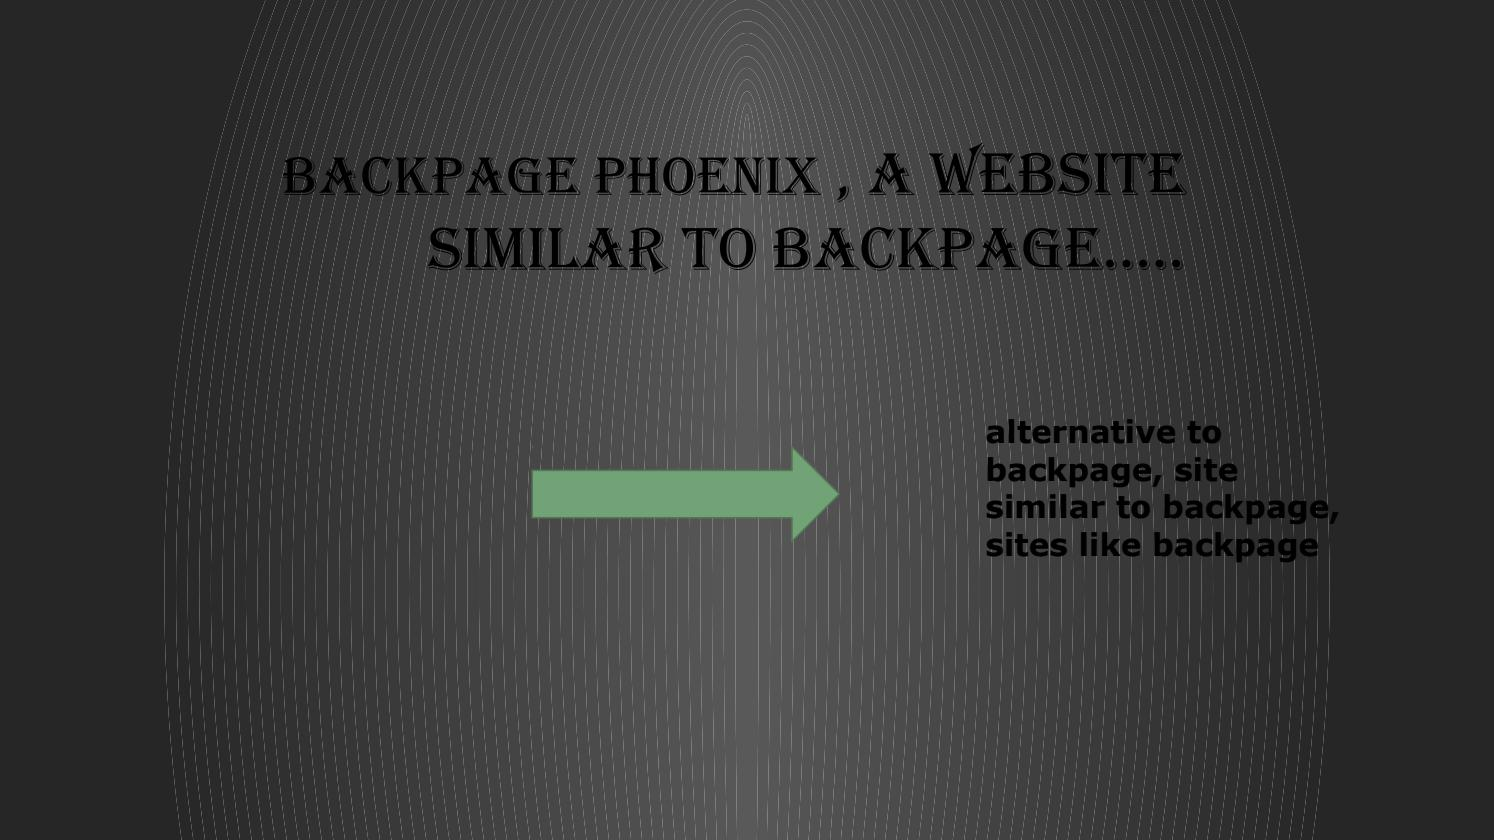 Backpage Phoenix Https Www Ebackpage Com Backpage Phoenix By Barrie Backpage Issuu